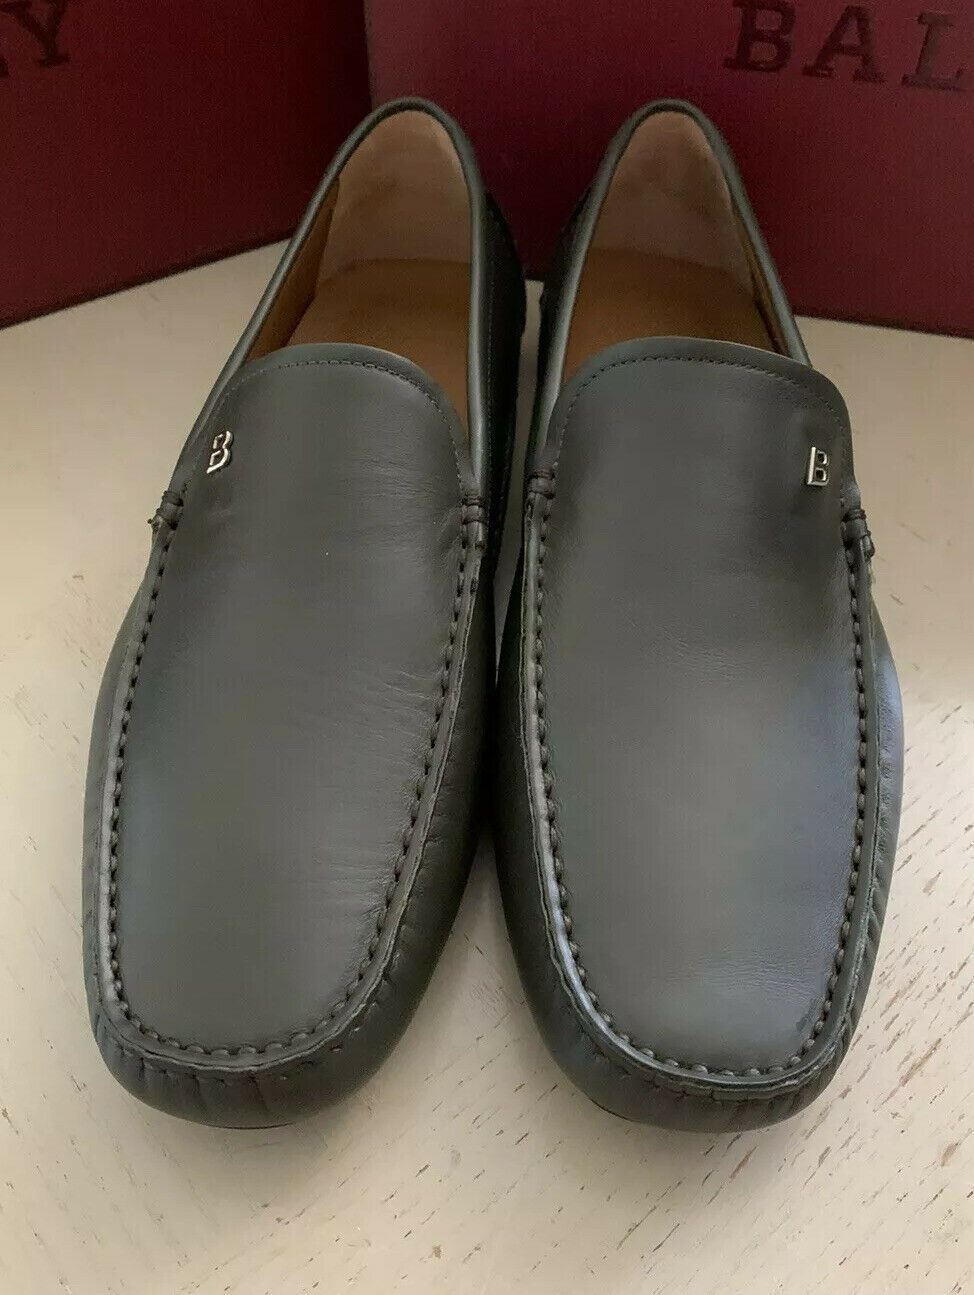 New $550 Bally Men Wander Leather Driver Loafers Shoes Dark Green US 10 Italy